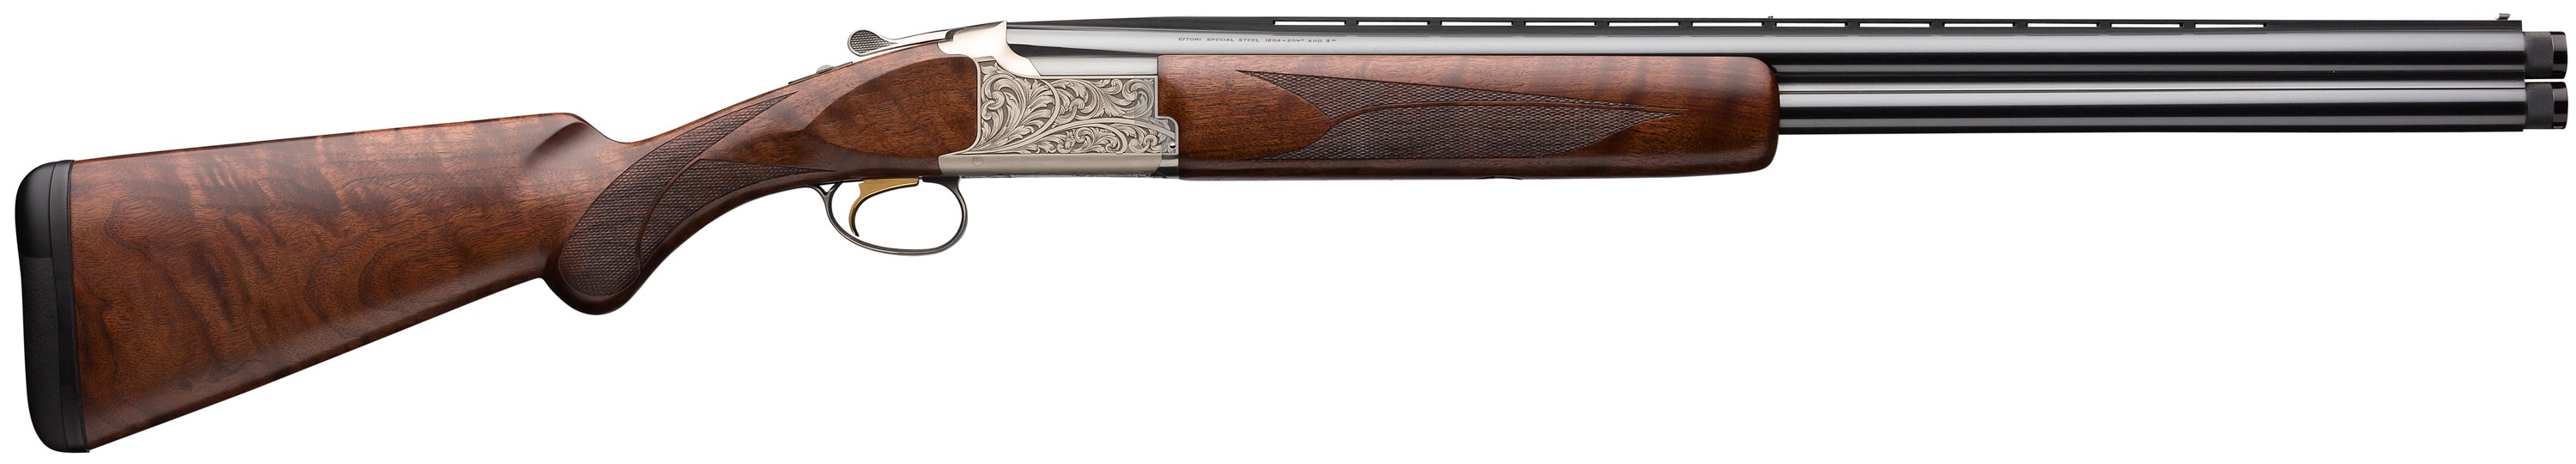 Browning Citori Feather Lightning Over/Under 3'' 12 Gauge 26'' Silver Nitride Steel/Black Barrel - Black Walnut